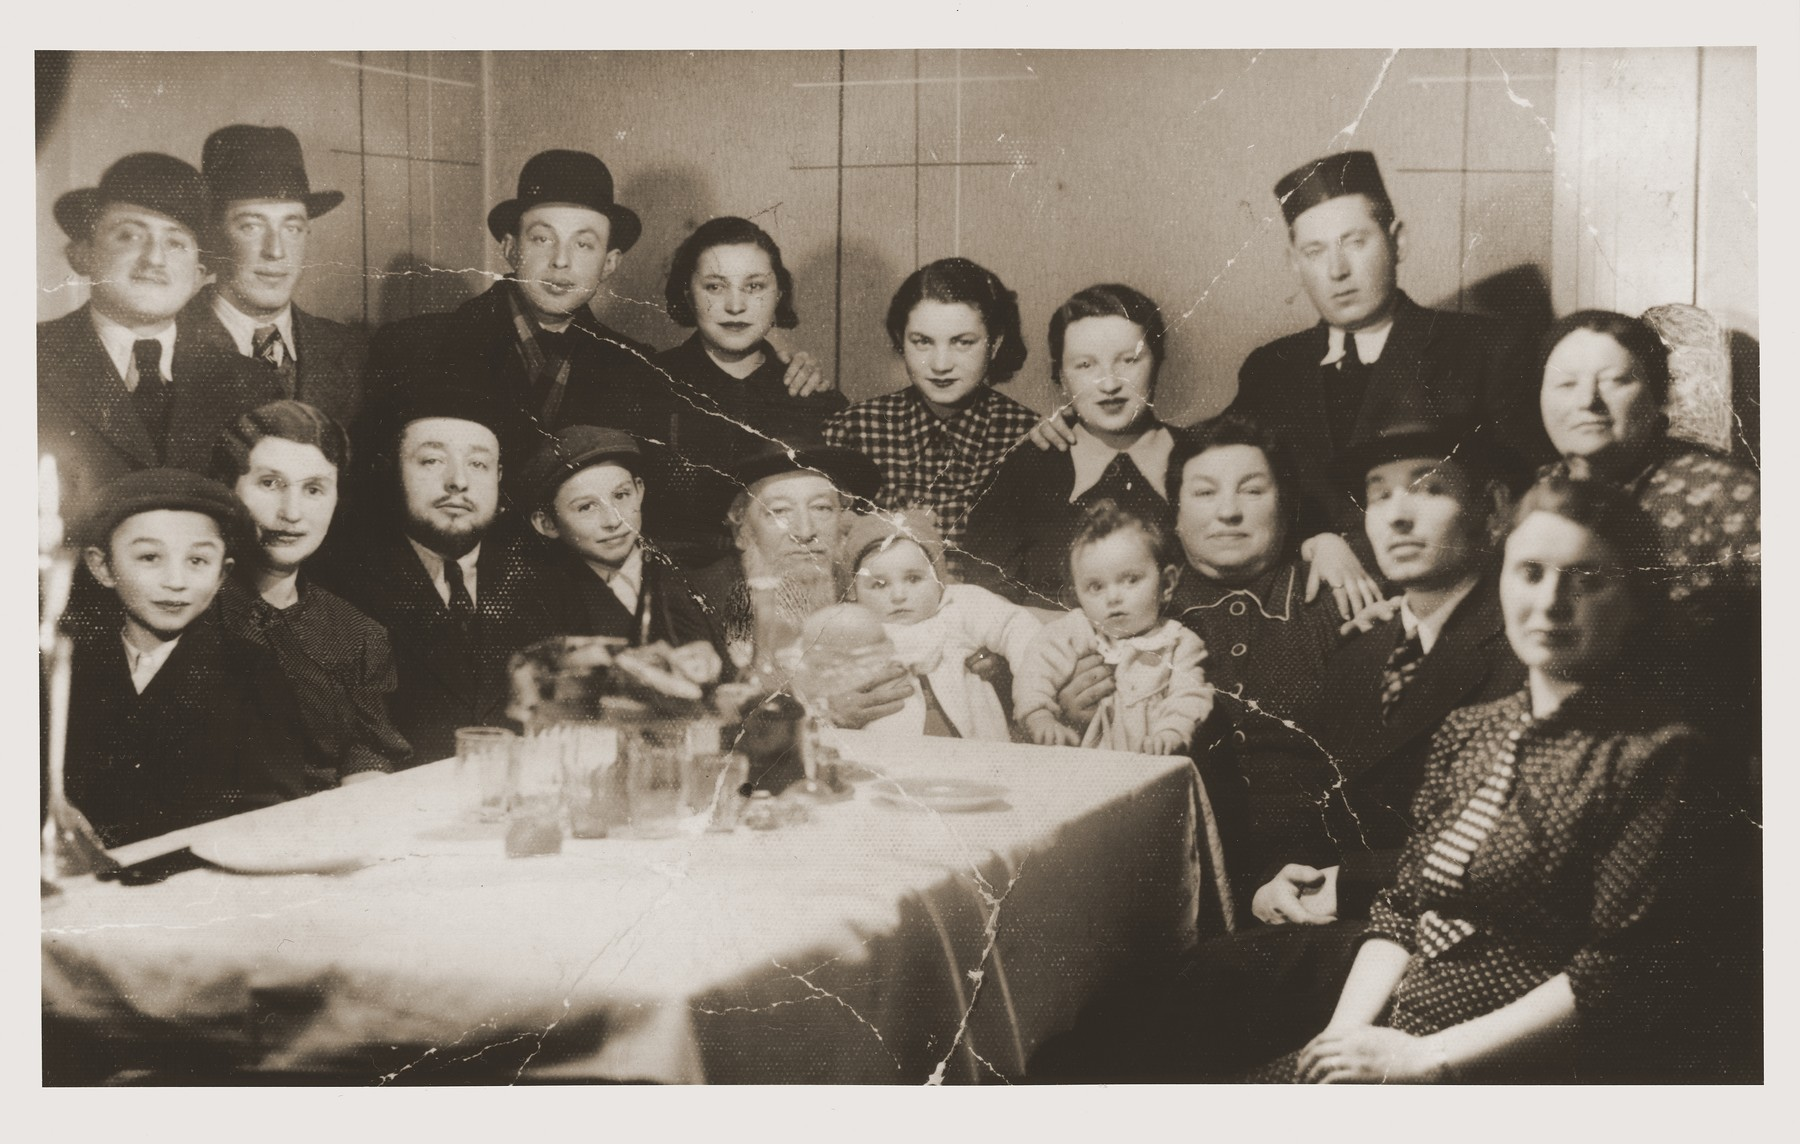 Members of the extended Goldschild family celebrate the holiday of Purim.    128 members of the Goldschild family lived in Khust, most of whom would come together to celebrate Purim.  Seated from left to right are: Yehuda, Berta, Meir, David, Grandfather Herman Goldschild, Esther, Judith, his grandmother Rozsi, Moses and Chana Goldschild.  Standing from left to right are: Chana Goldschild's brother, Hartenbaum, Zsiga Bodner, Vera Fox Goldschild, Rivke Goldschild Hartenbaum, Gittl Klein, Lipe Klein and Chaya Sara.